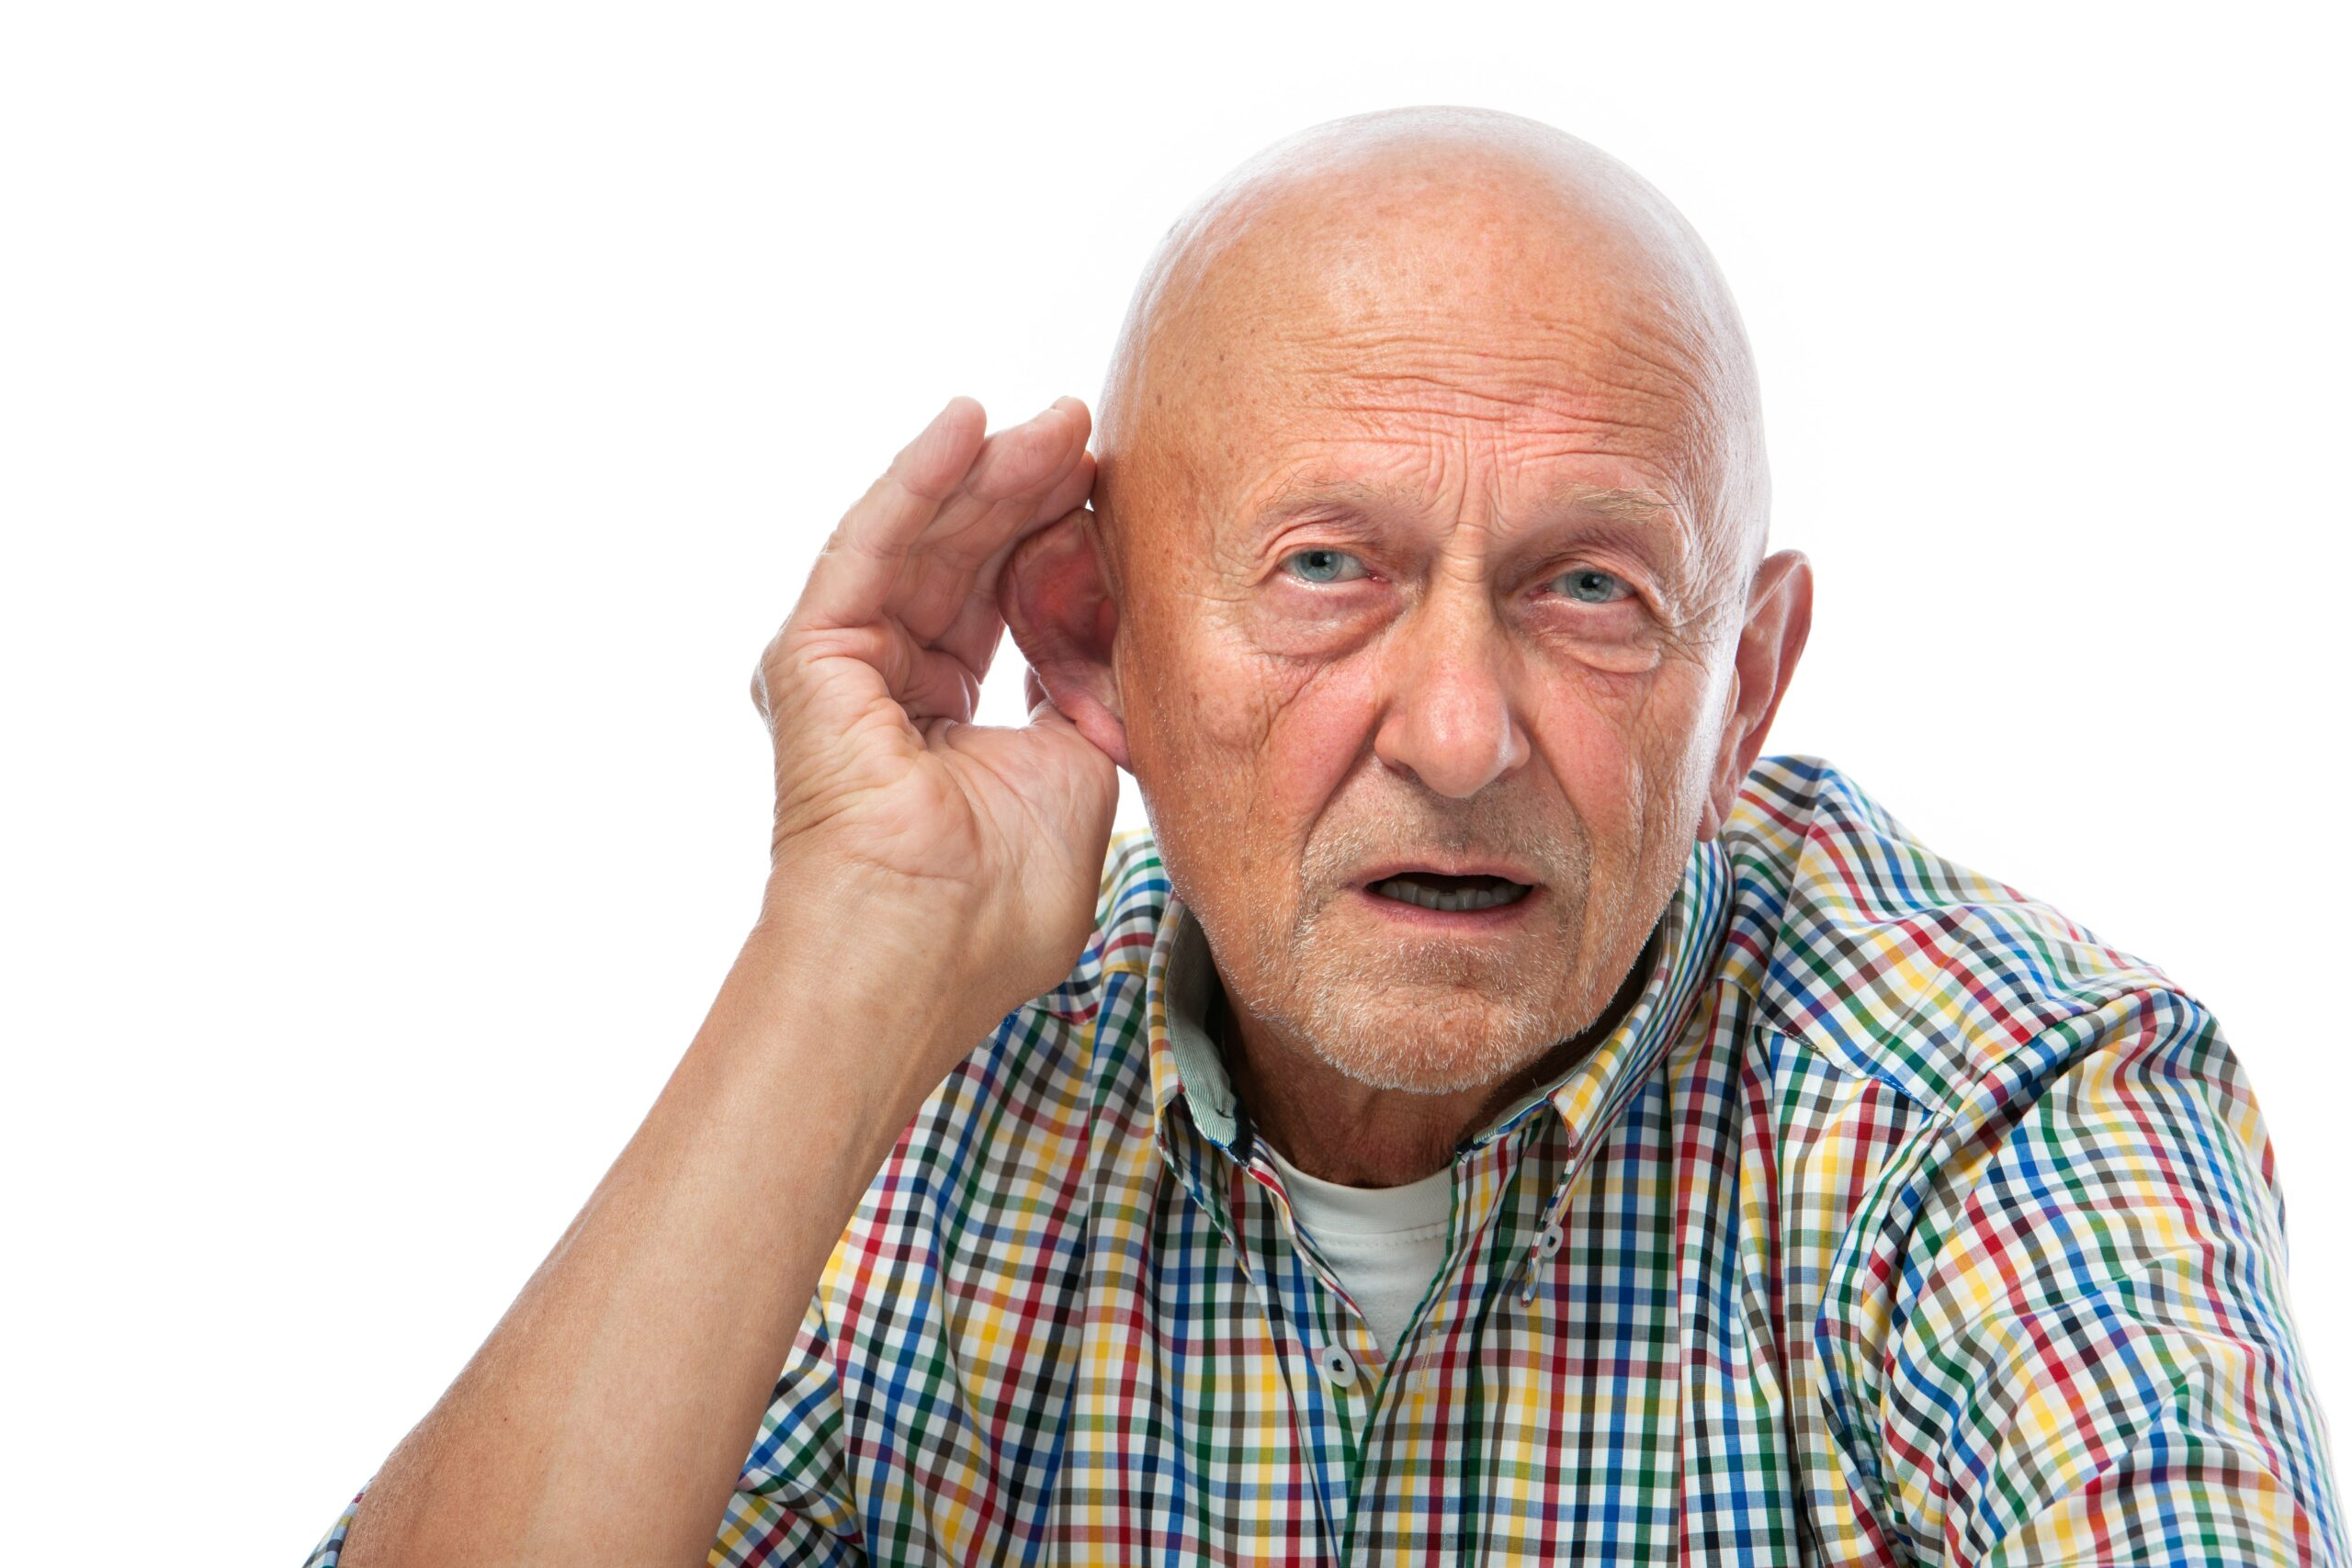 hearing loss and chronic illness